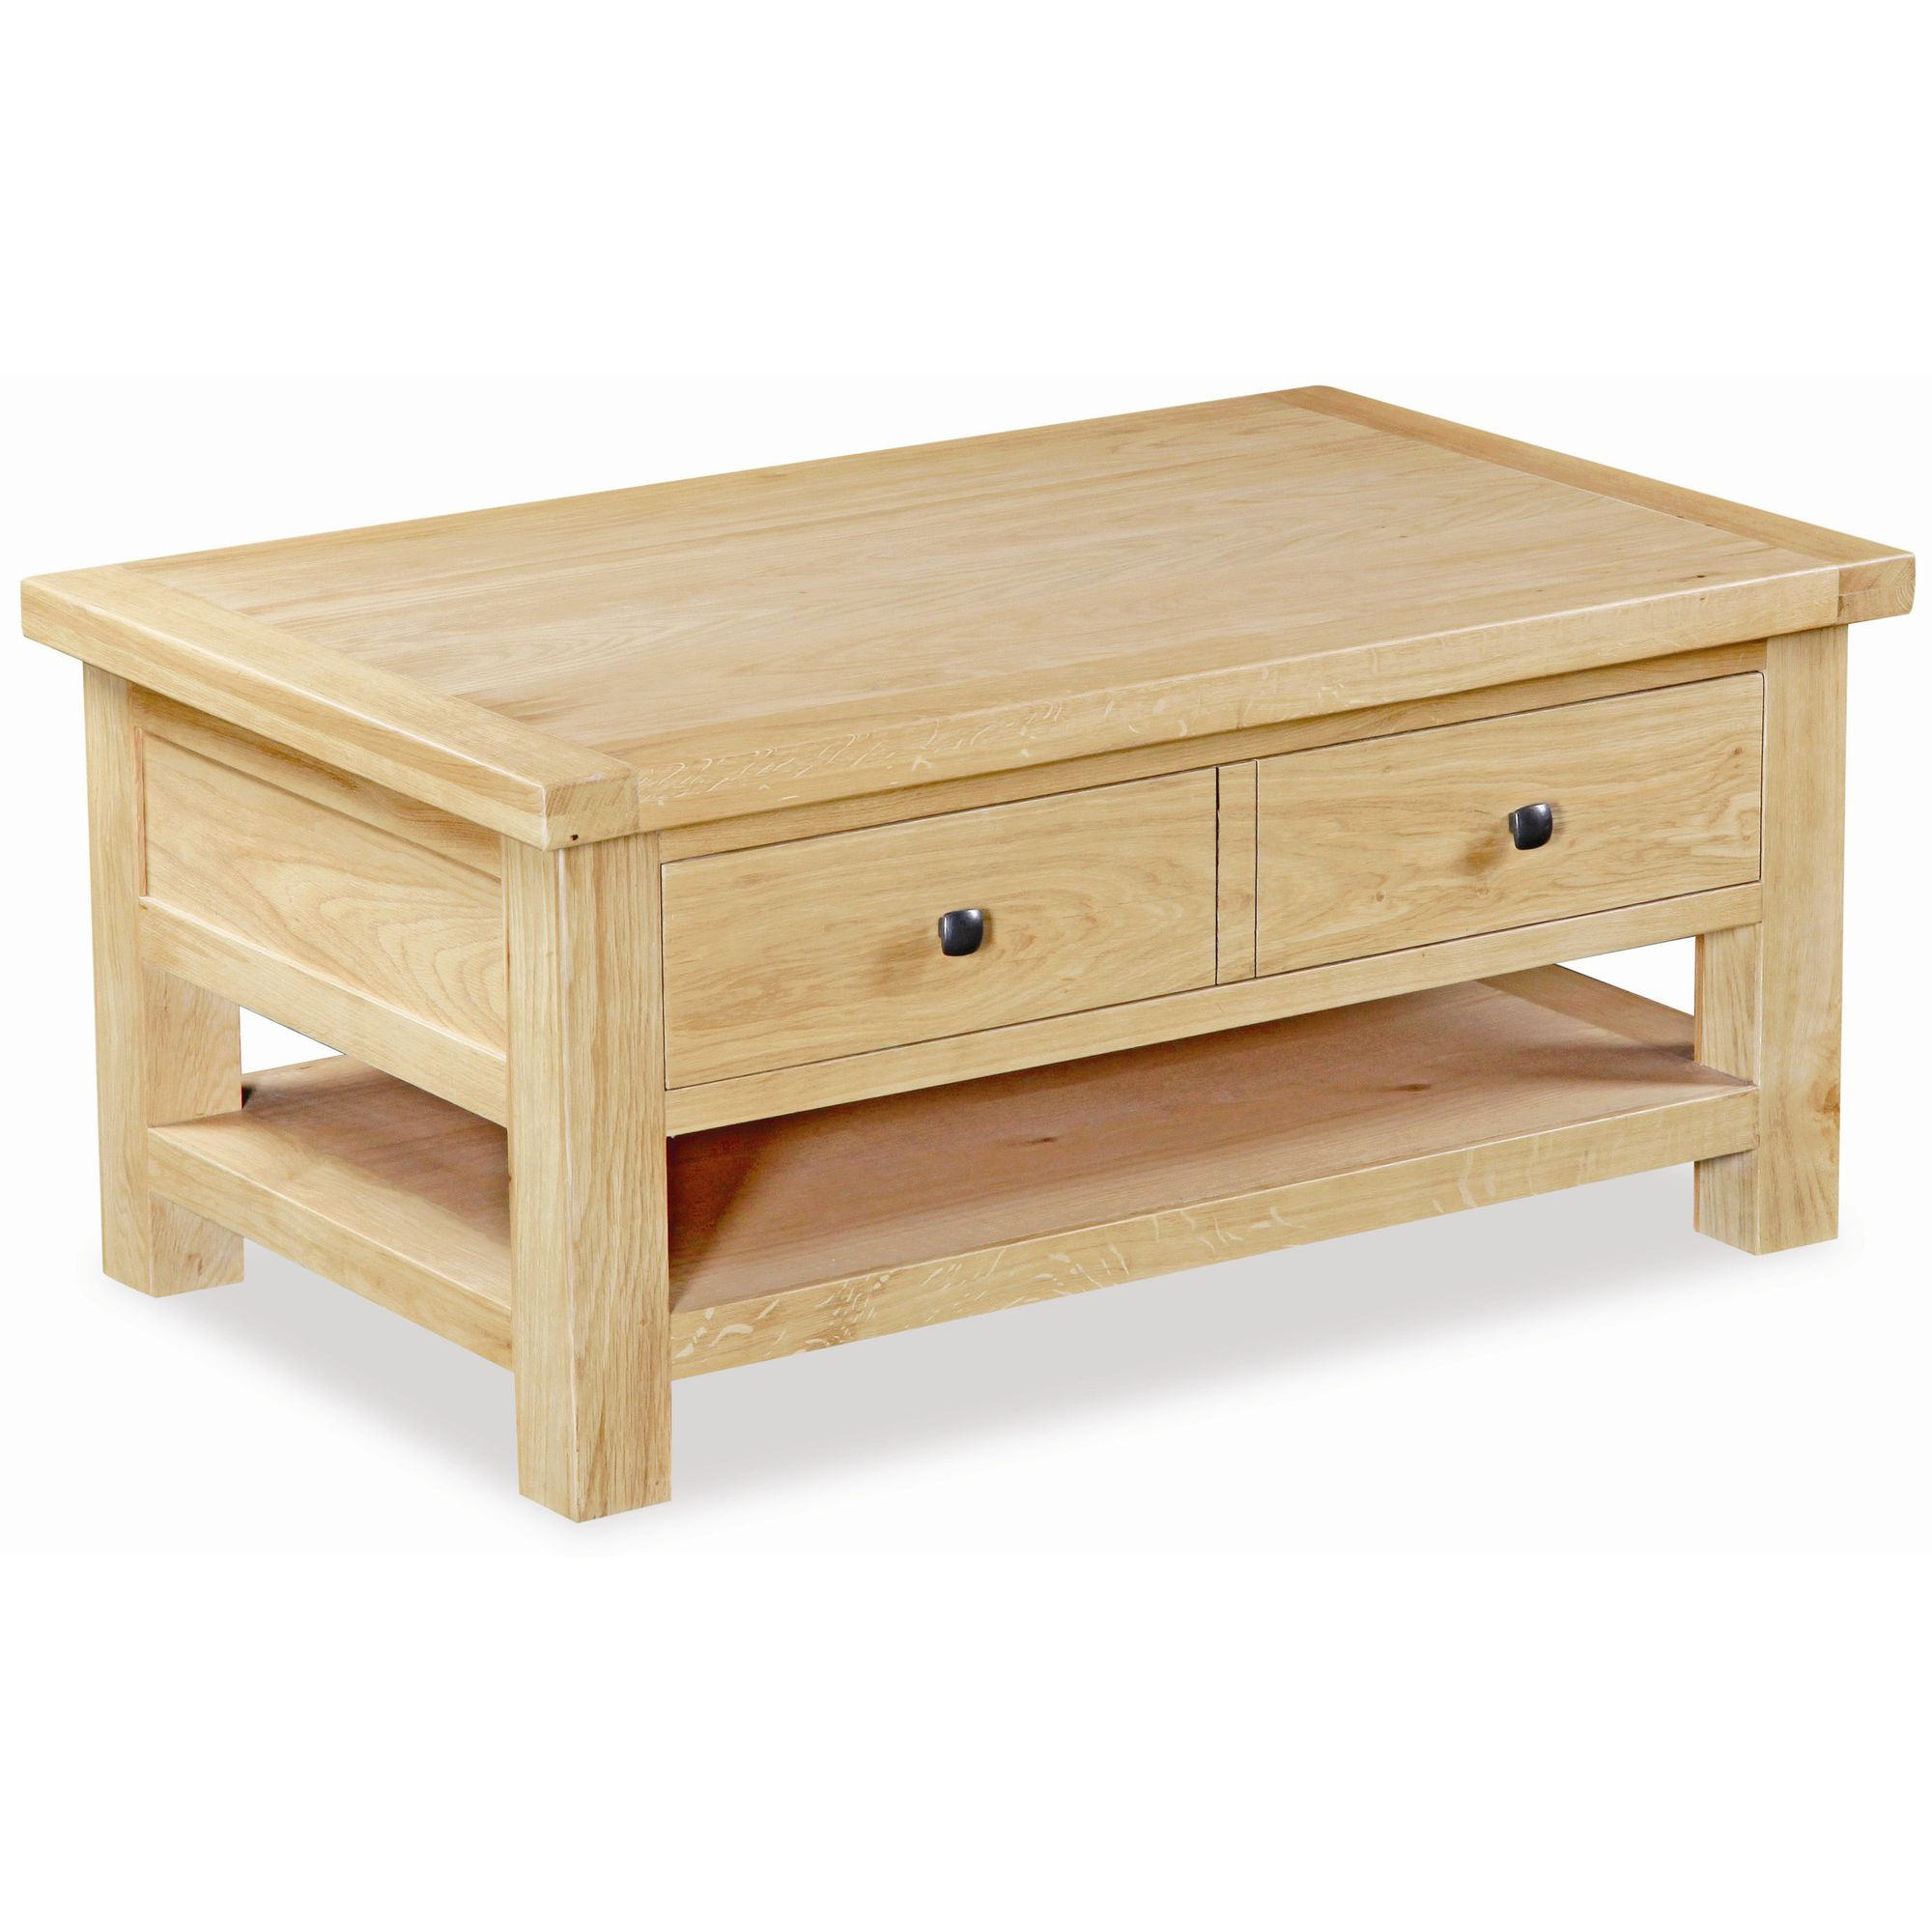 Alterton Furniture Chatsworth Large Coffee Table with Drawer at Tescos Direct